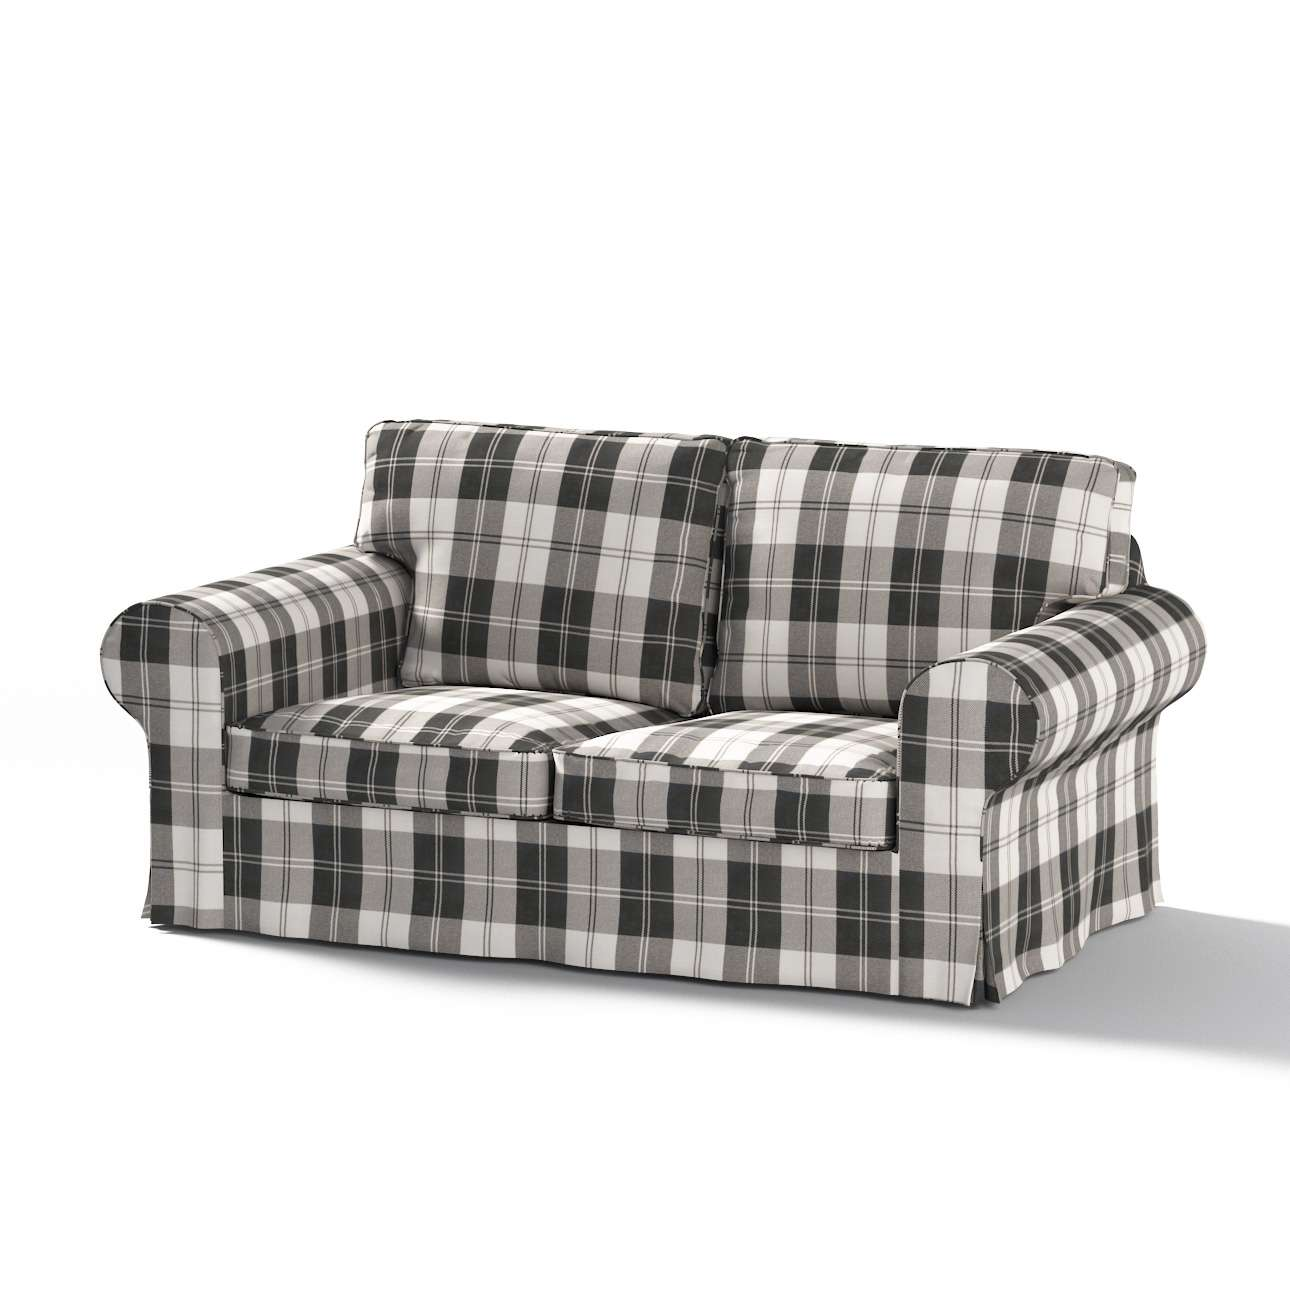 Ektorp 2-seater sofa bed cover (for model on sale in Ikea 2004-2012)